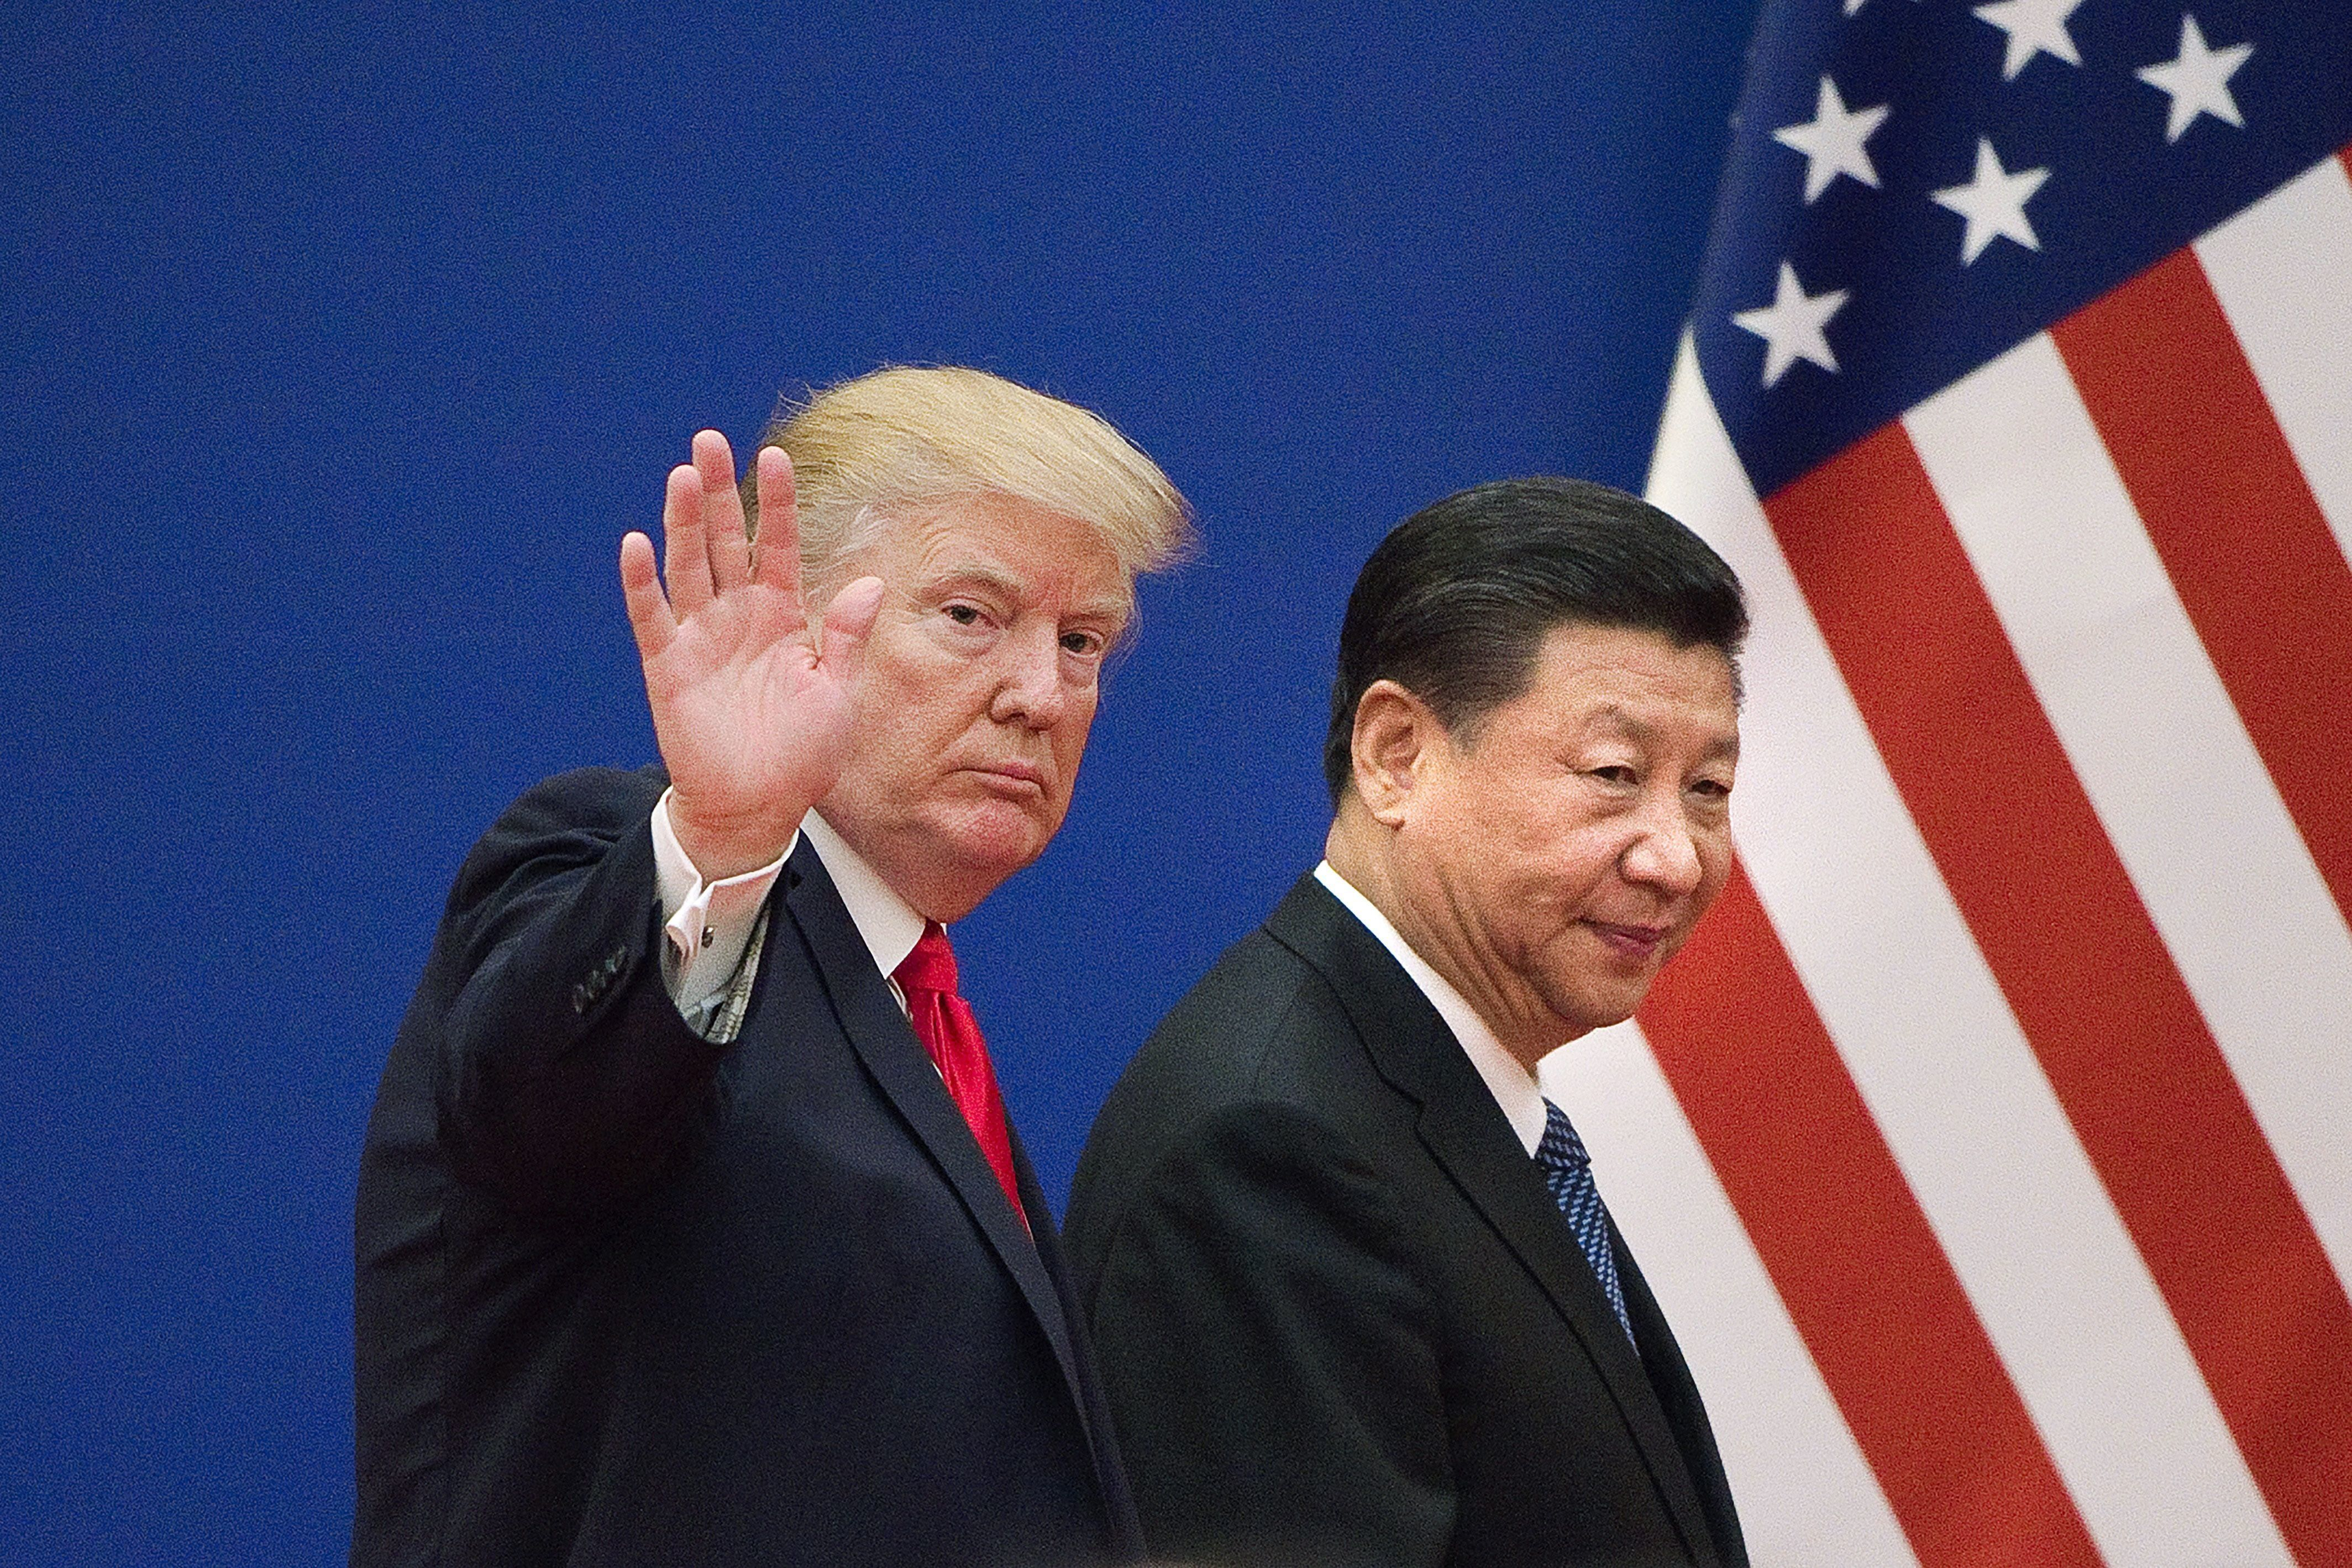 US President Donald Trump (L) and China's President Xi Jinping leave a business leaders event at the Great Hall of the People in Beijing on November 9, 2017. Donald Trump urged Chinese leader Xi Jinping to work 'hard' and act fast to help resolve the North Korean nuclear crisis, during their meeting in Beijing on November 9, warning that 'time is quickly running out'. / AFP PHOTO / Nicolas ASFOURI        (Photo credit should read NICOLAS ASFOURI/AFP/Getty Images)